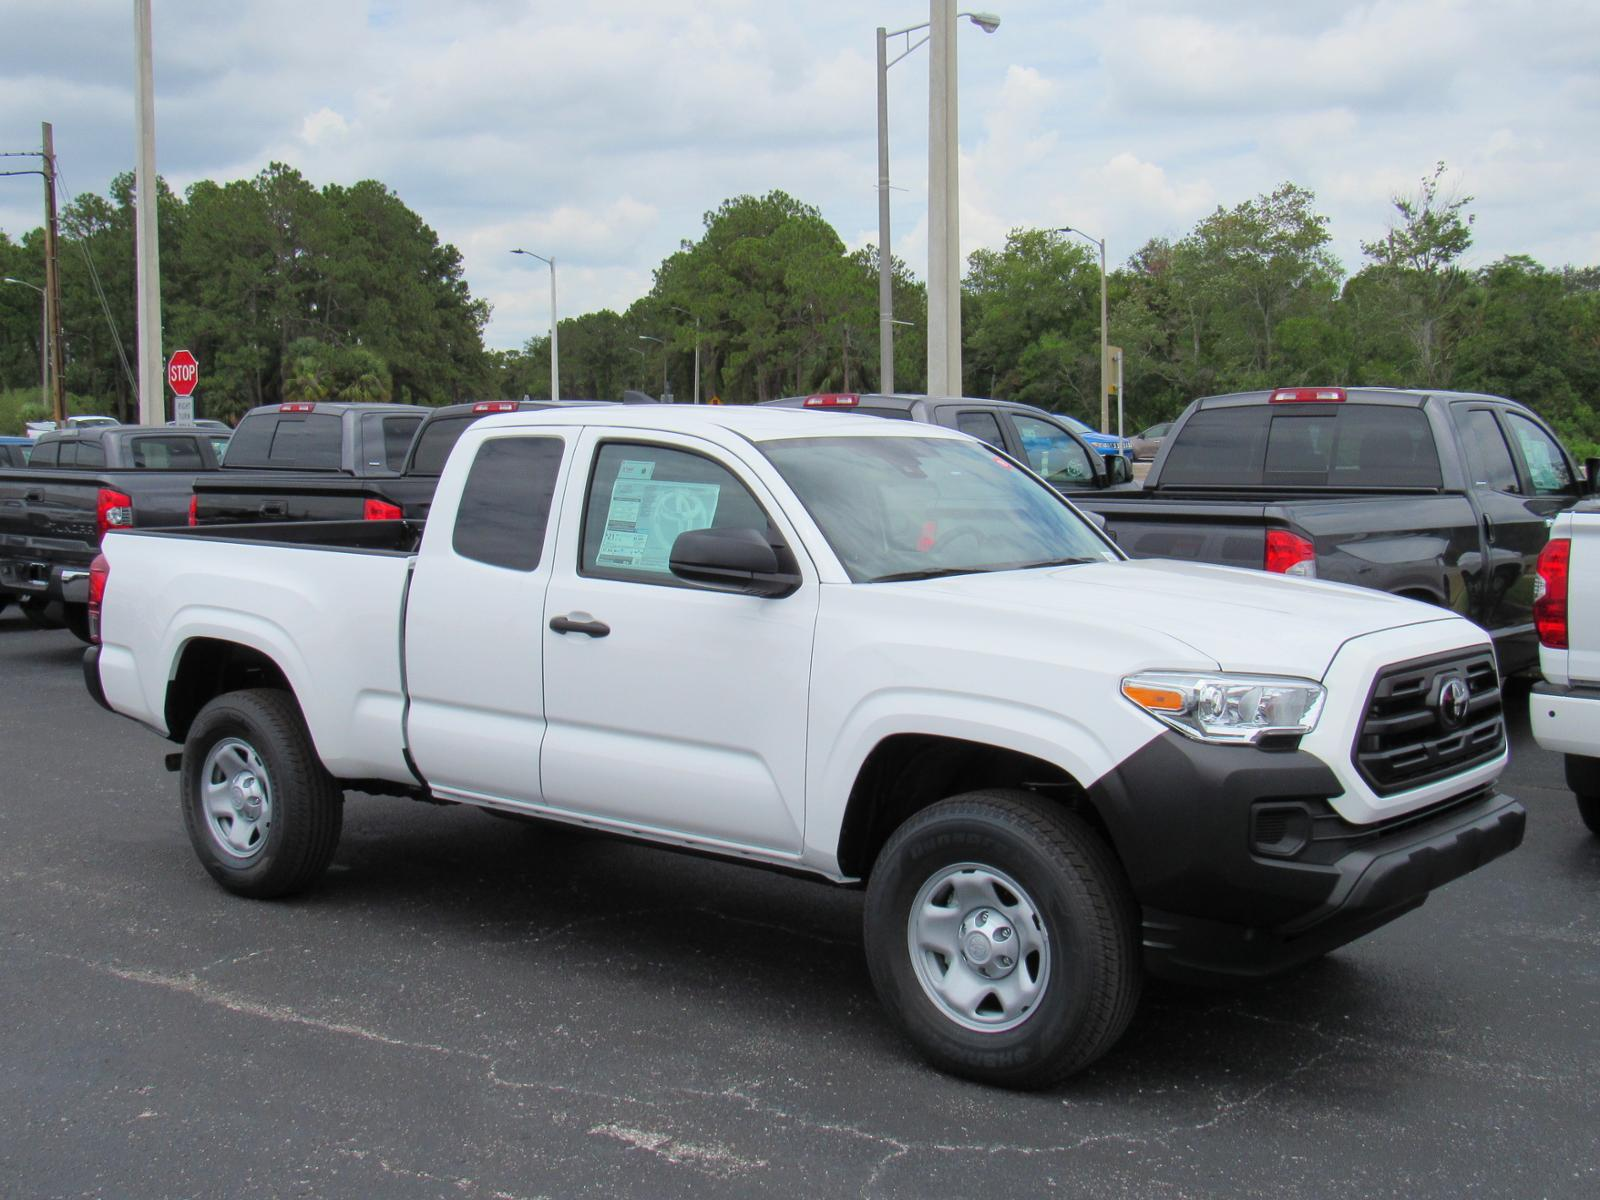 New 2019 Toyota Tacoma 2WD SR Access Cab 6' Bed I4 AT RWD